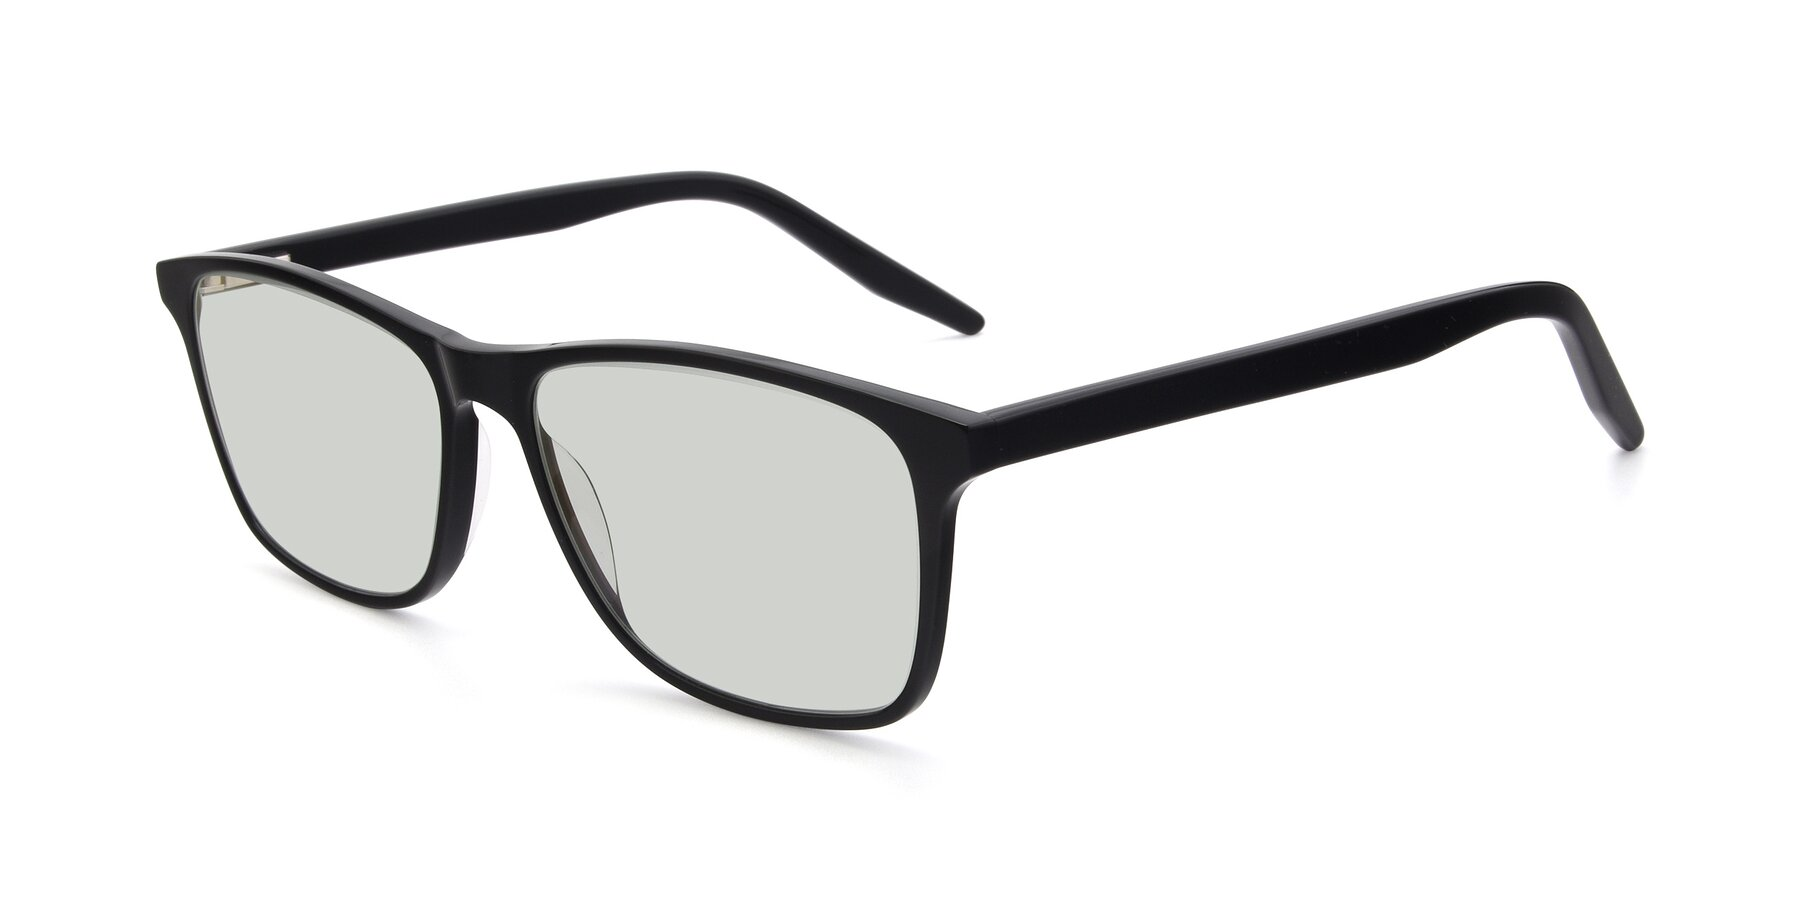 Angle of 17500 in Black with Light Green Tinted Lenses